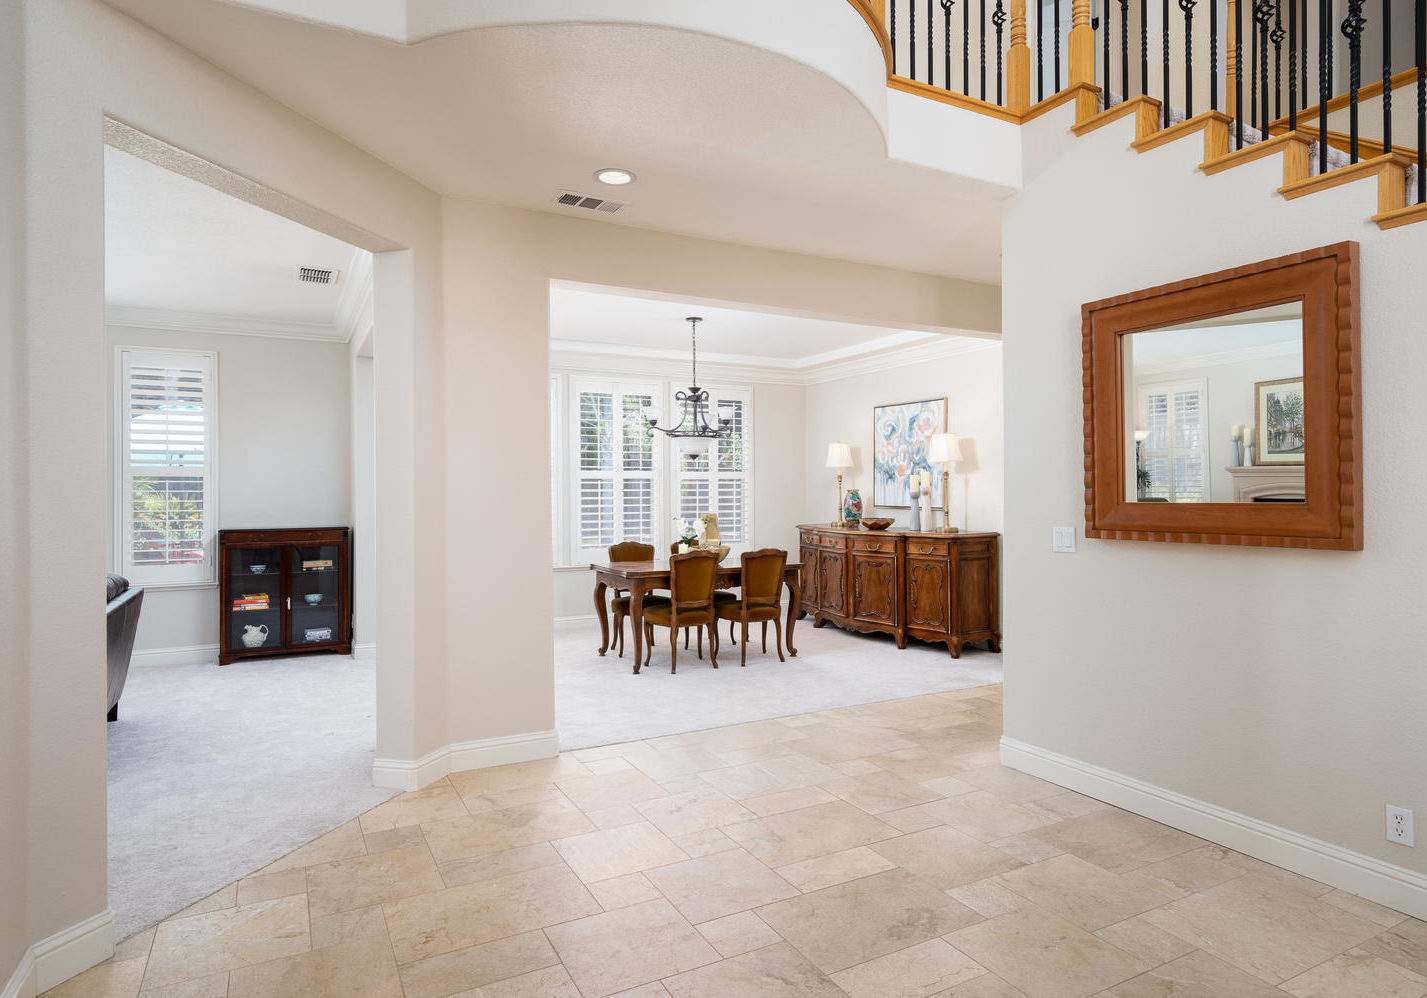 8755 Brookdale Cir Granite Bay-large-013-010-Foyer-1500x998-72dpi